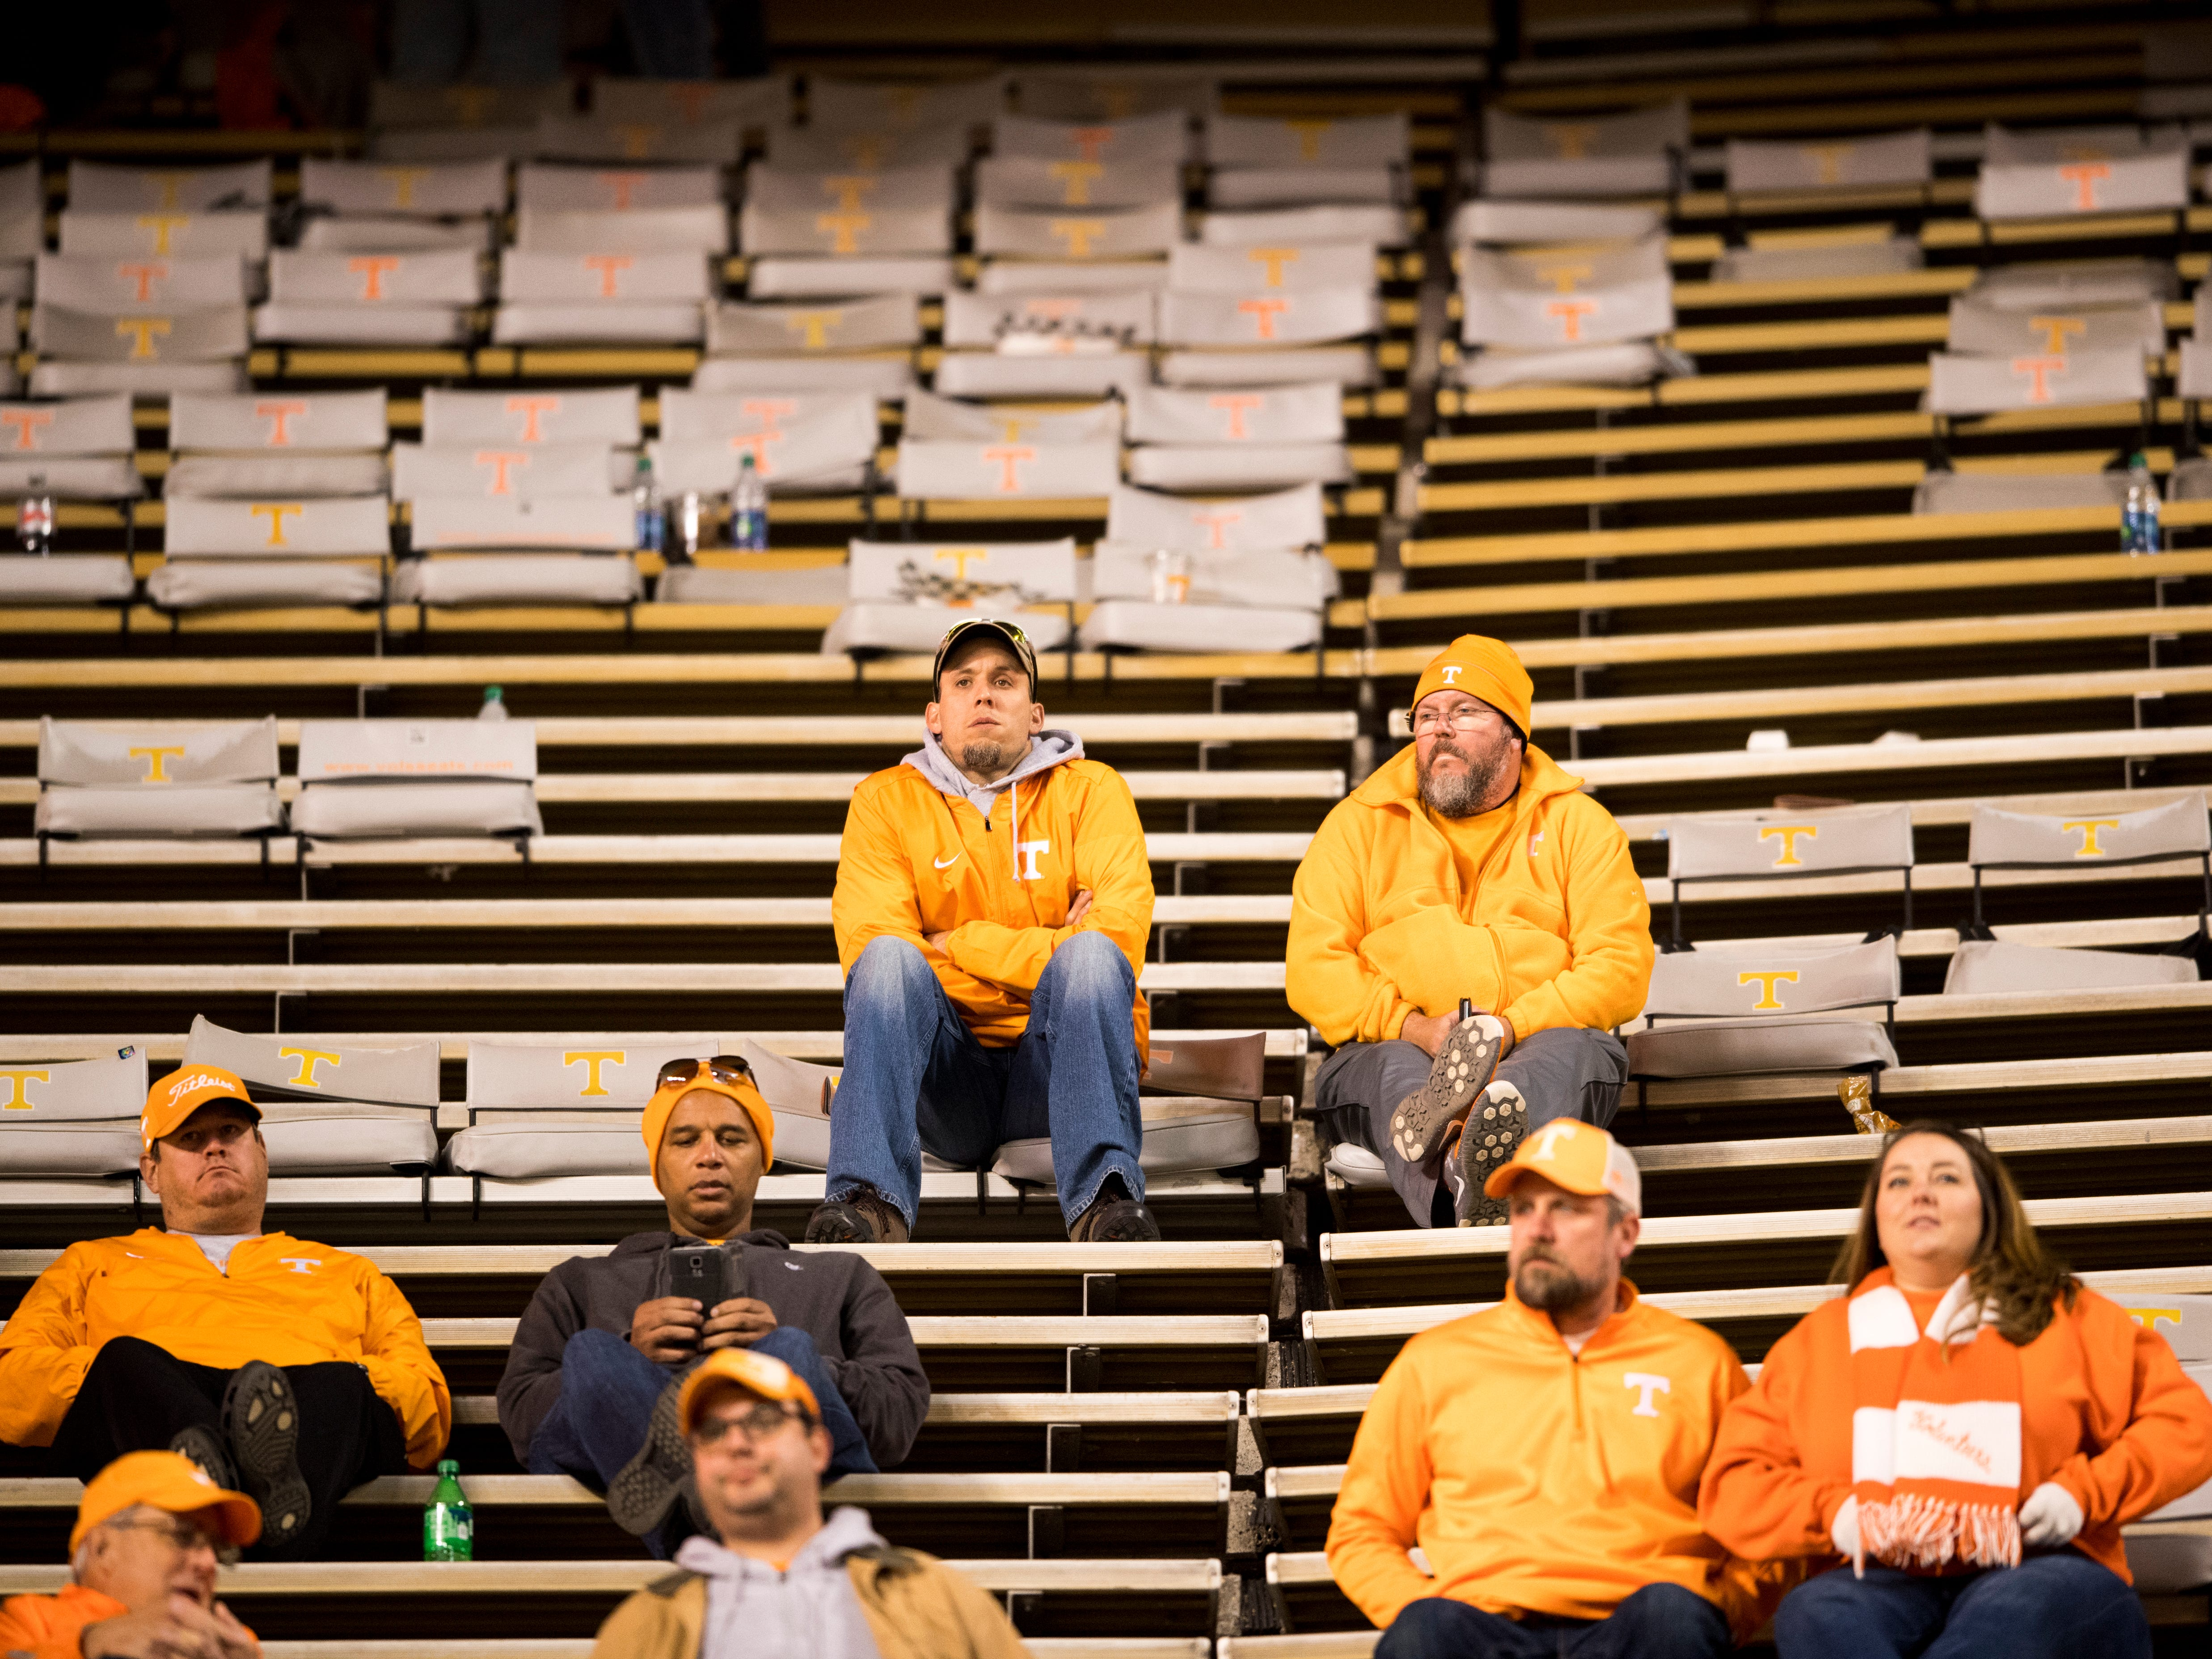 Fans watch from empty stands during the Tennessee Volunteers game against the Missouri Tigers in Neyland Stadium on Saturday, November 17, 2018.